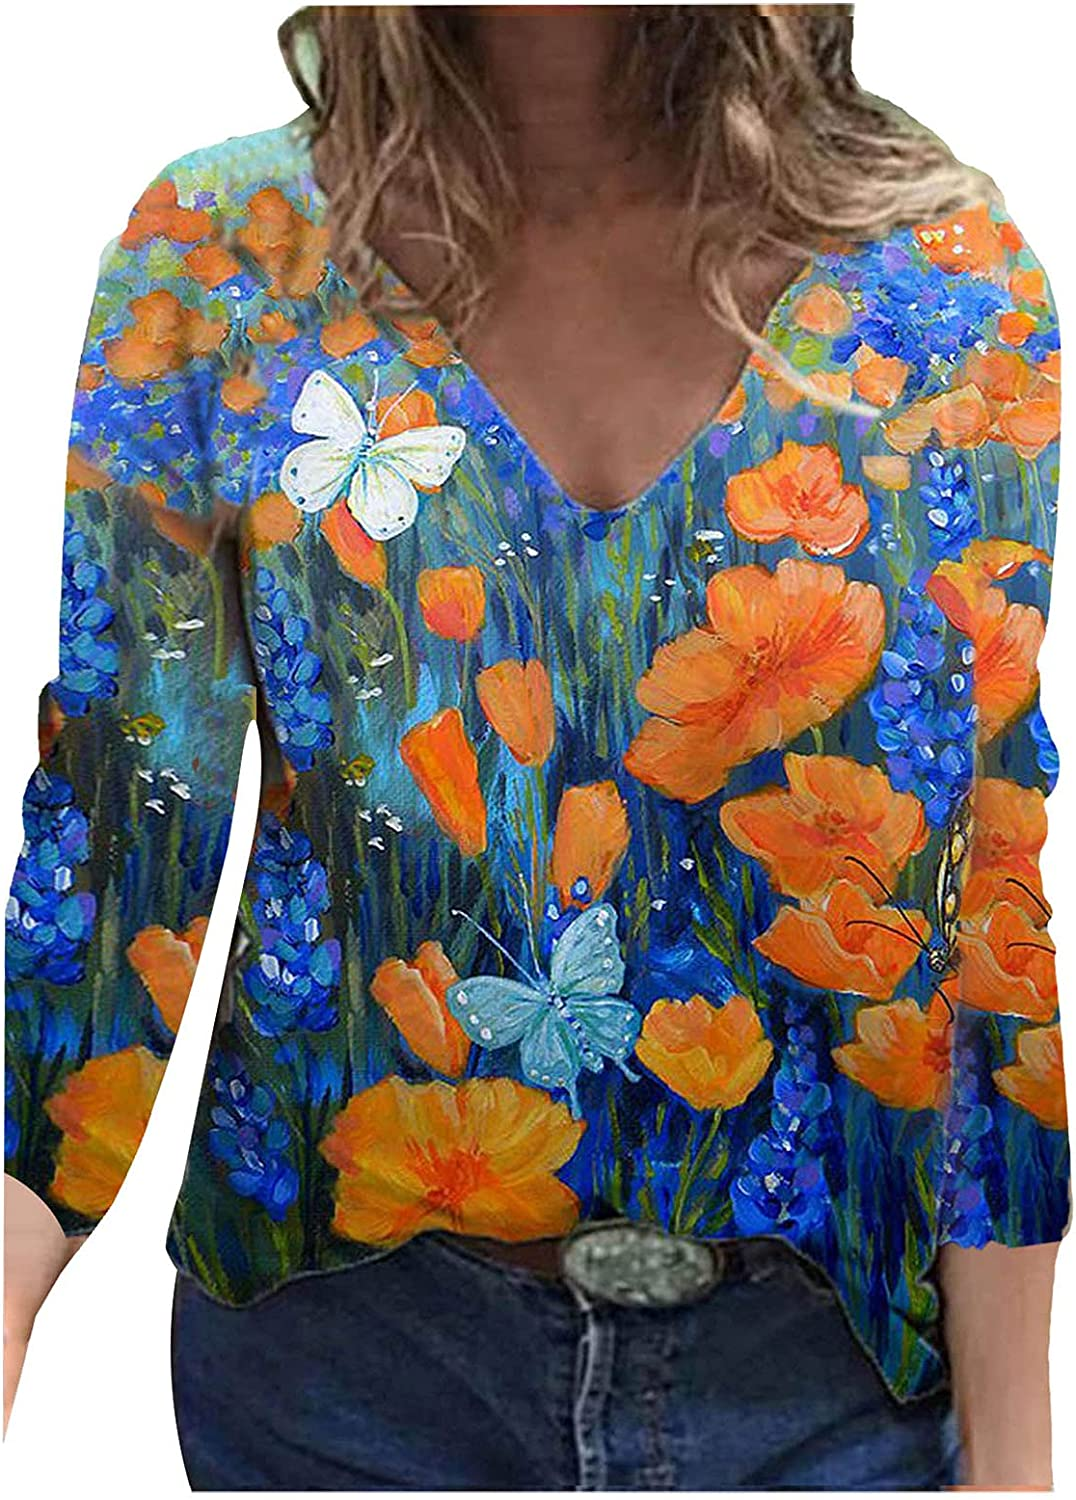 Long Sleeve Shirts for Women Fashion V-Neck Blouse Tops Loose Ladies Sweatshirts Casual Floral Printed Tees